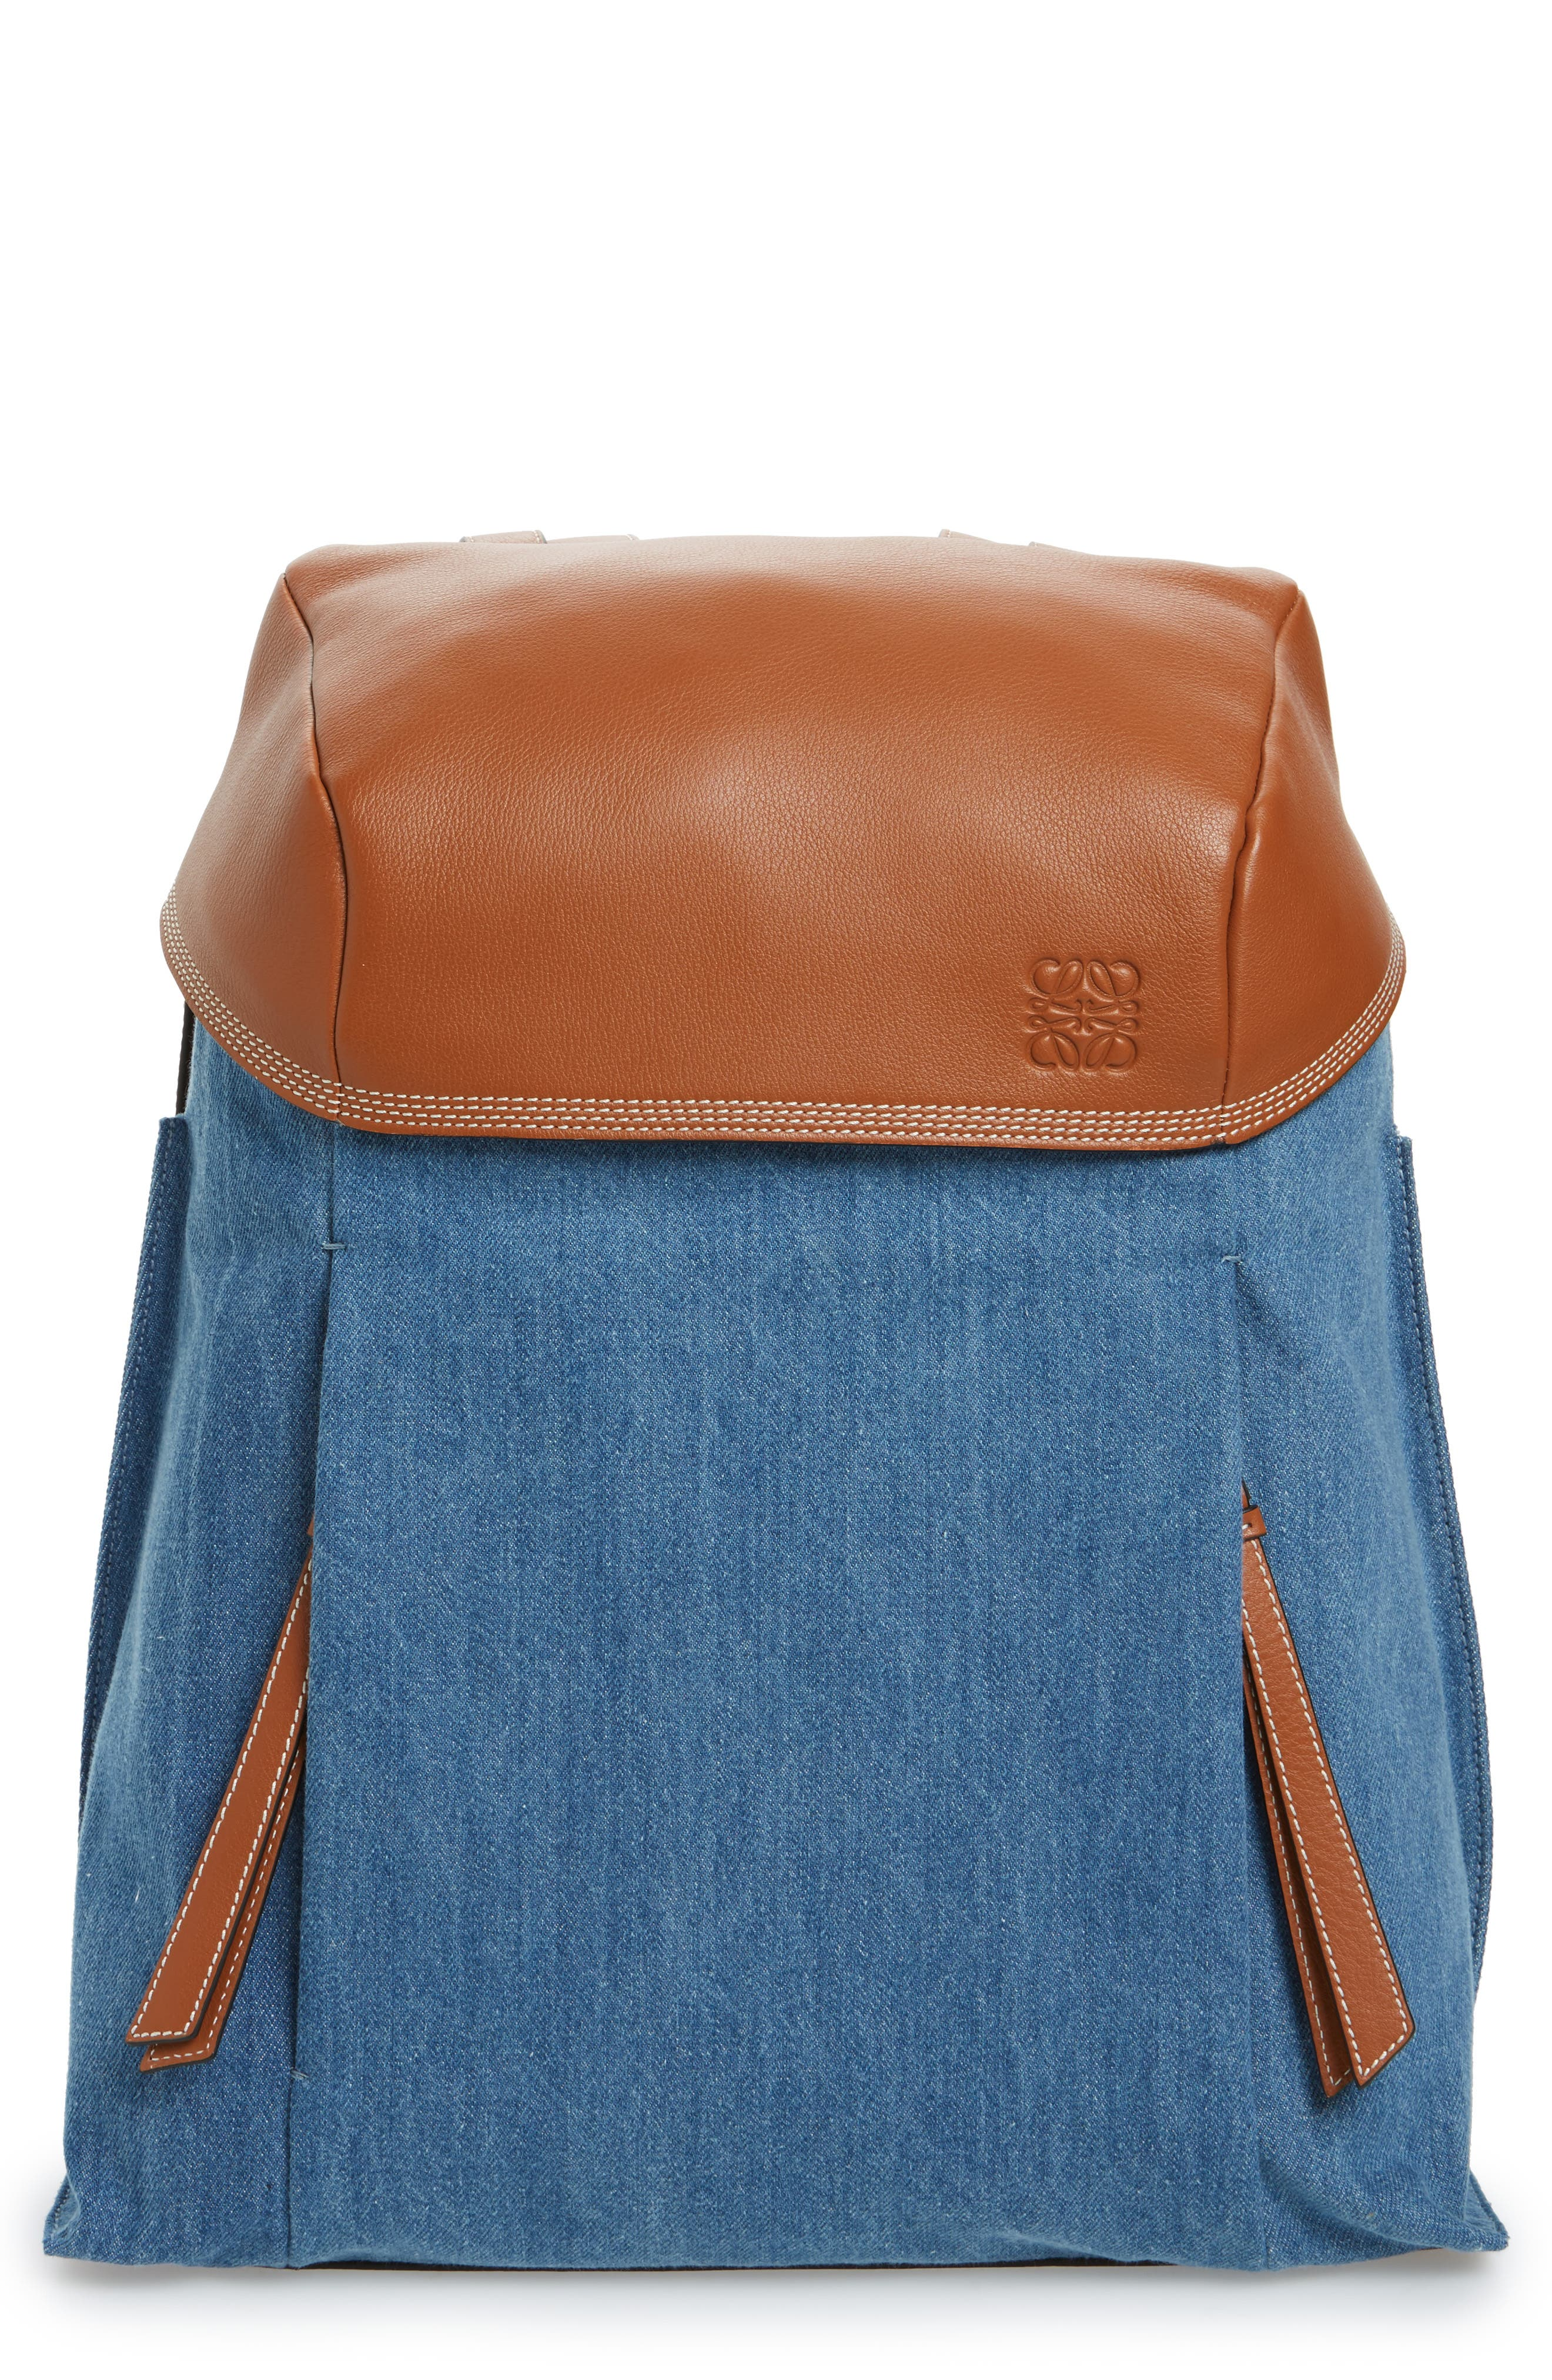 T Small Denim & Leather Backpack,                         Main,                         color, 476